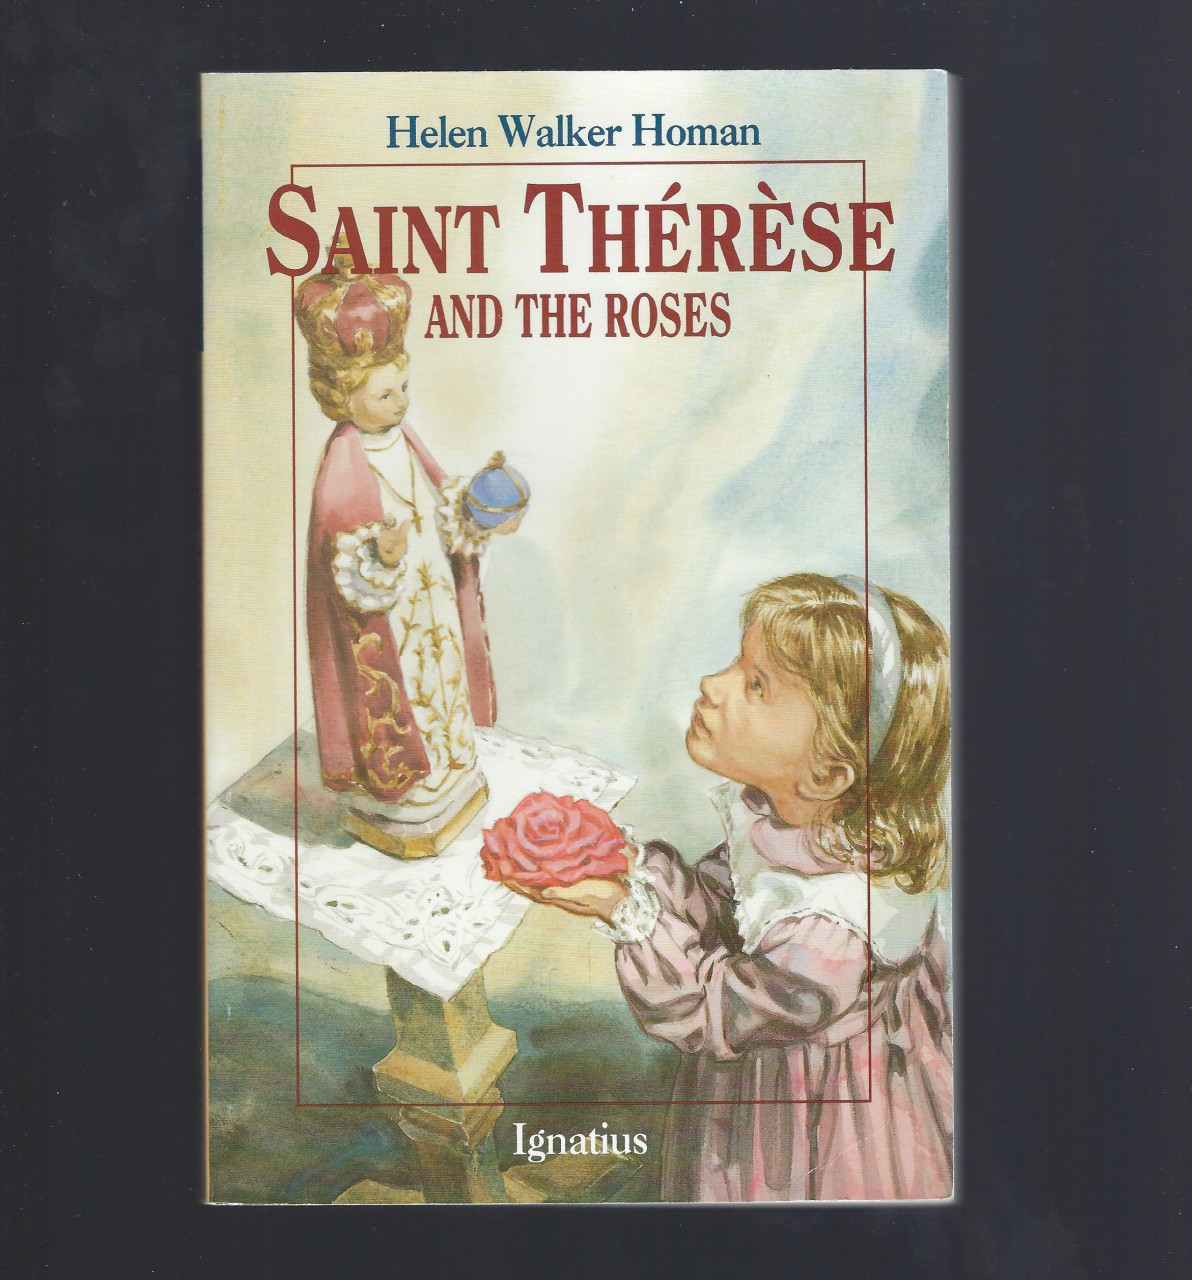 Saint Therese and the Roses Vision Books, Helen Walker Homan; Illustrator-George William Thompson